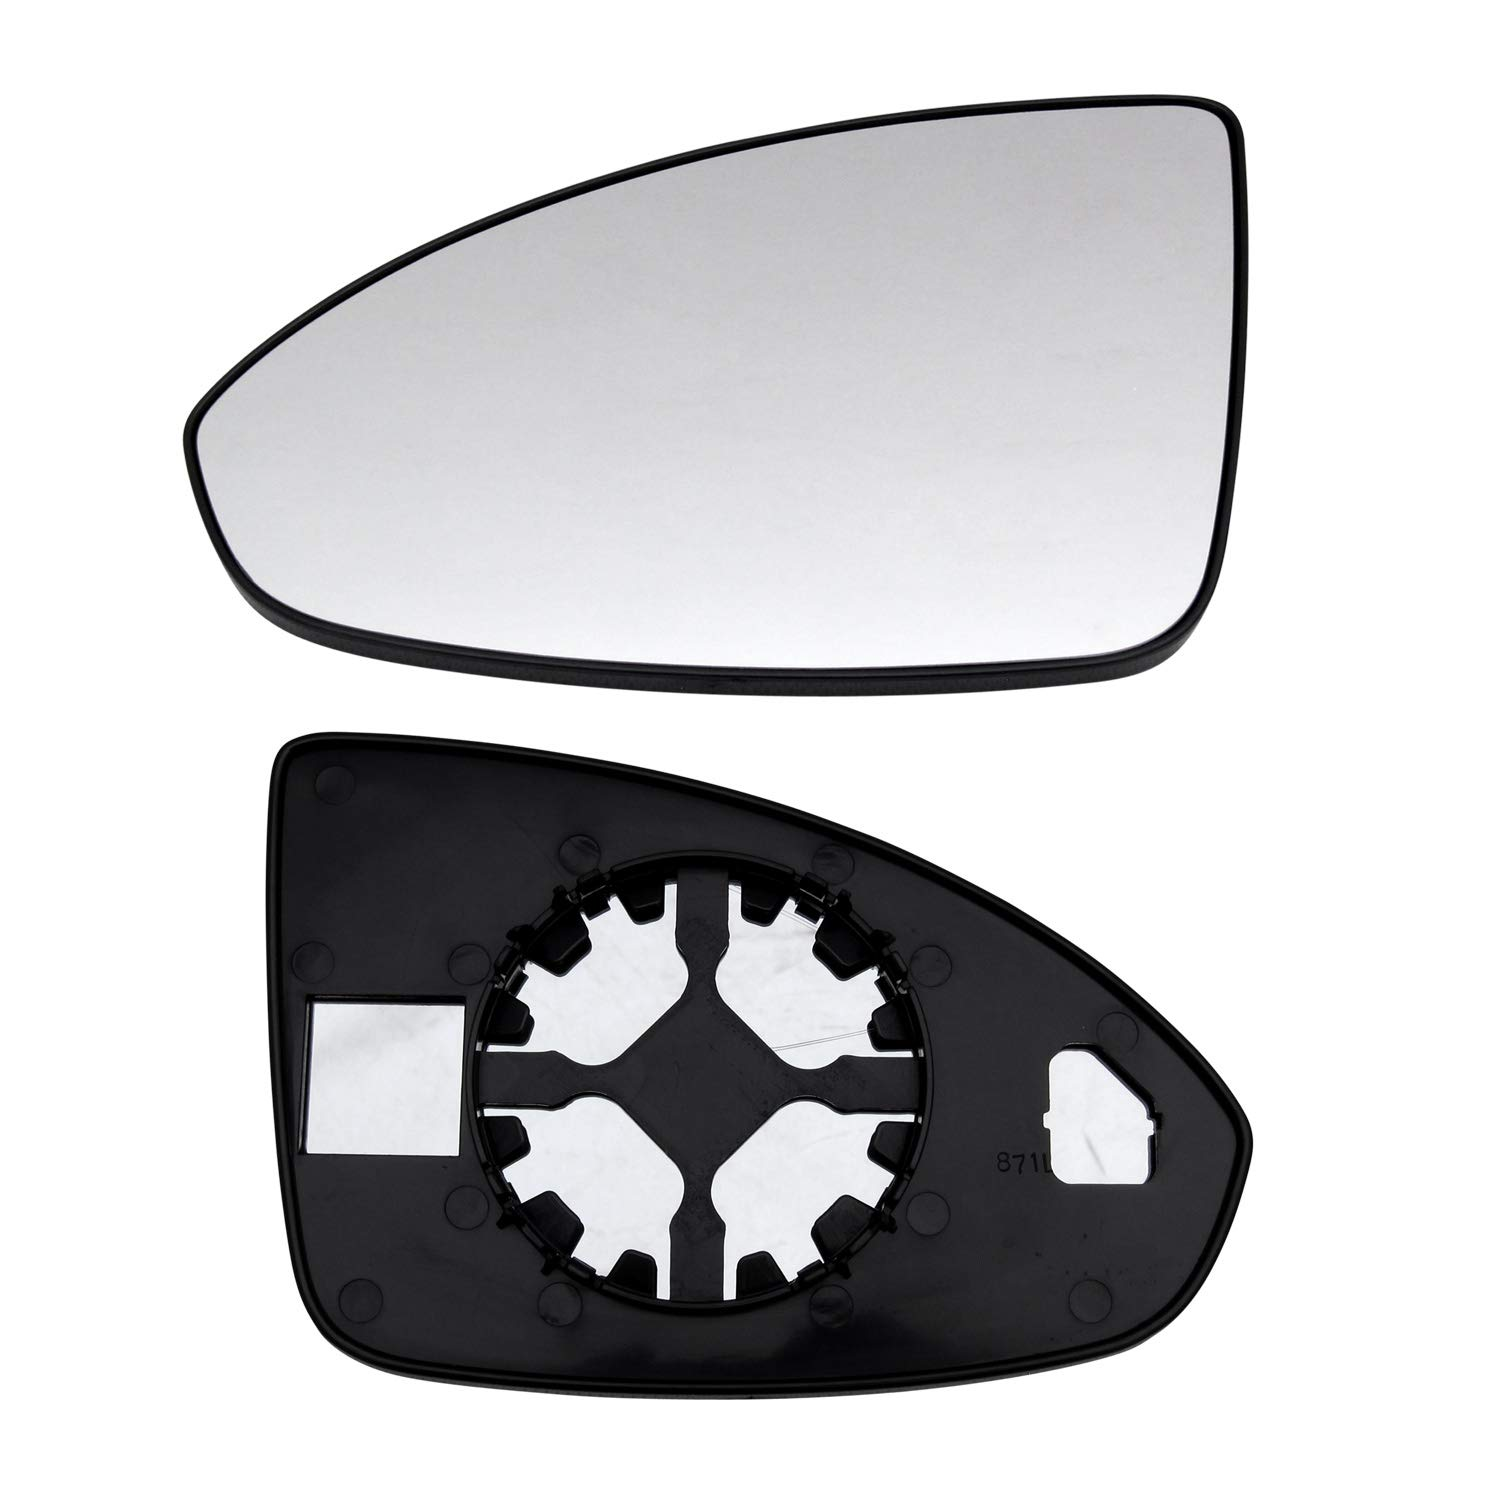 2016 Limited Sold By Rugged TUFF New Replacement Driver Side Mirror Glass With Backing Compatible With 2011-2016 Chevrolet Chevy Cruze